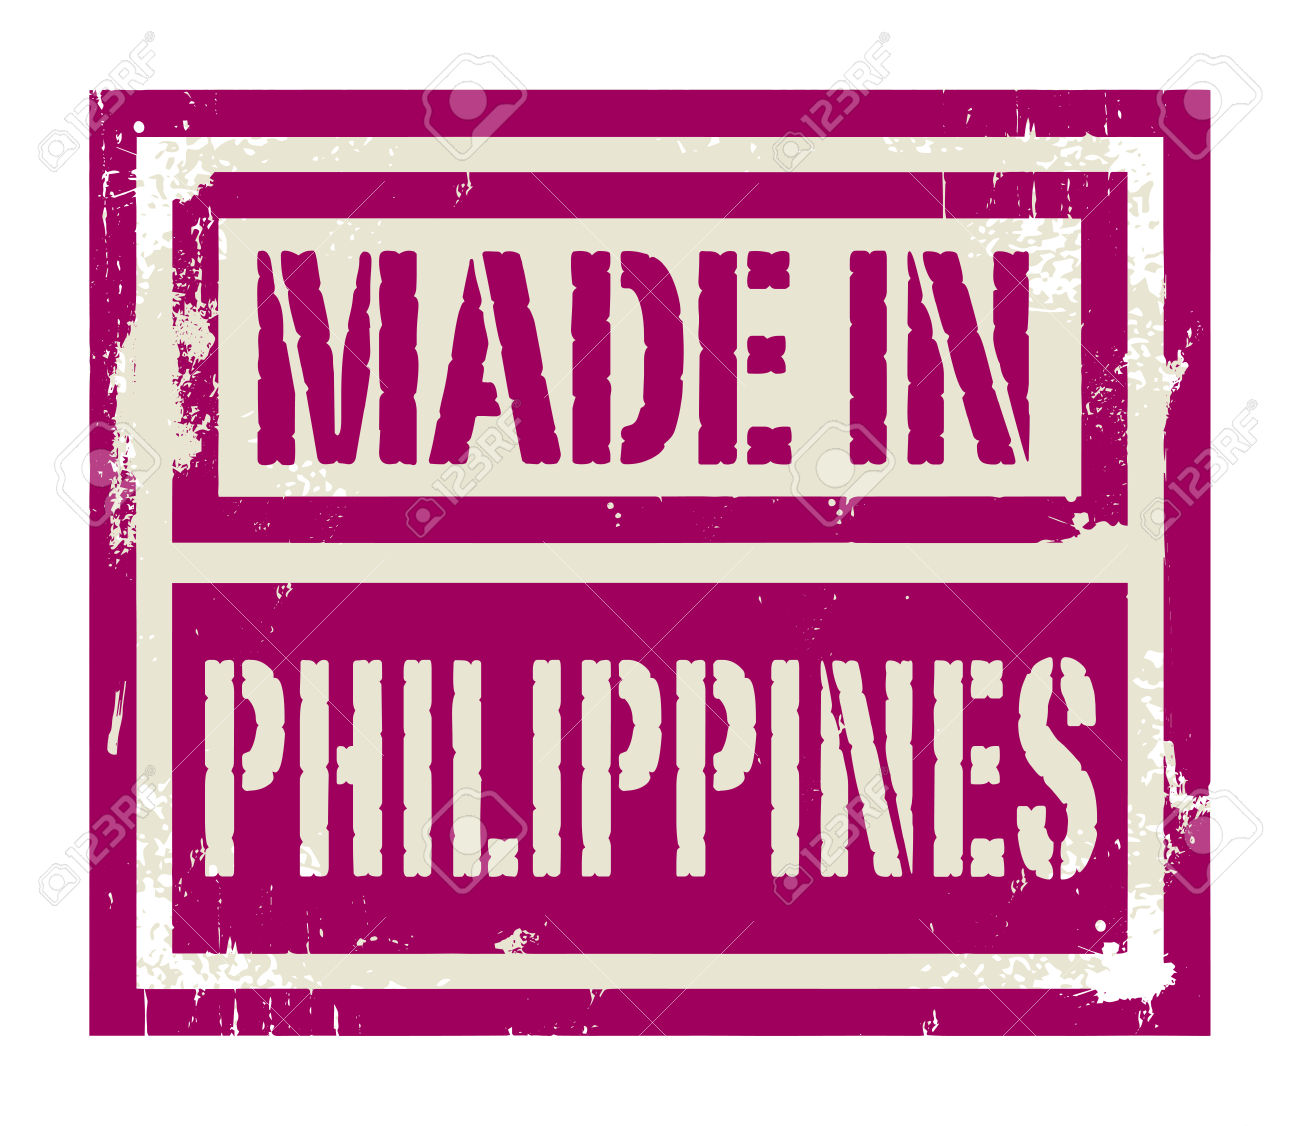 Abstract Stamp Or Label With Text Made In Philippines, Vector.